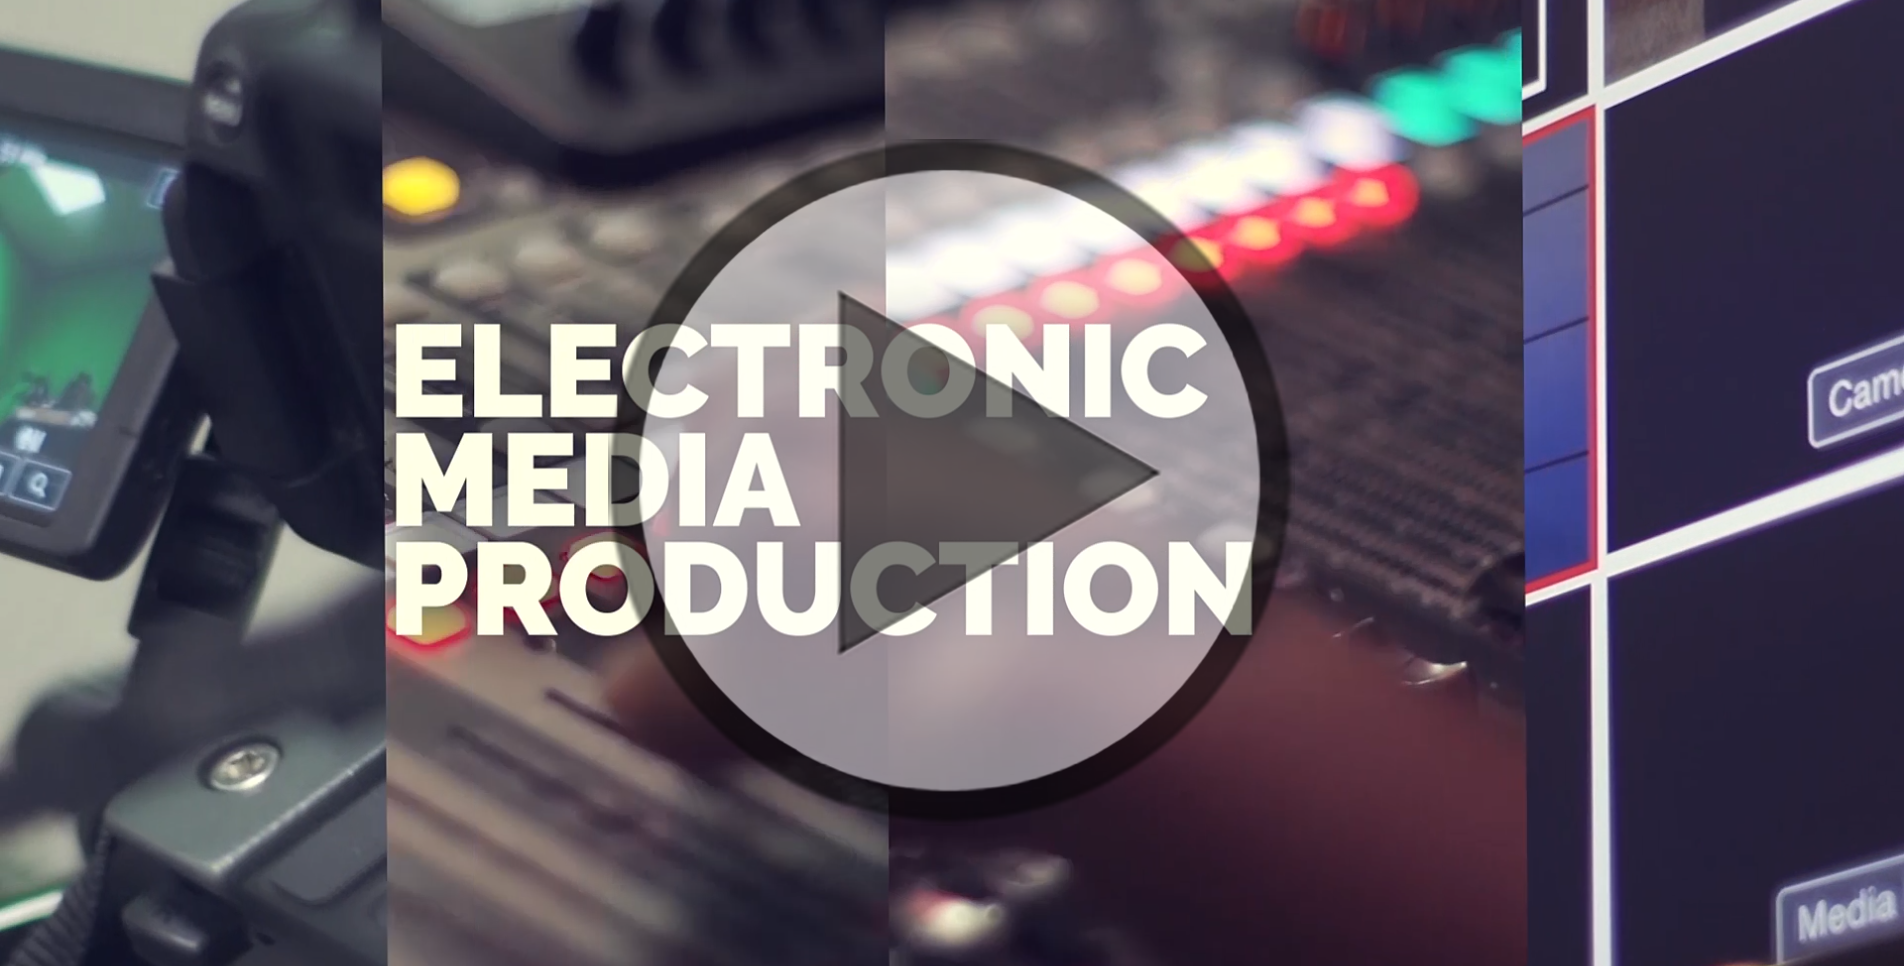 Electronic Media Production